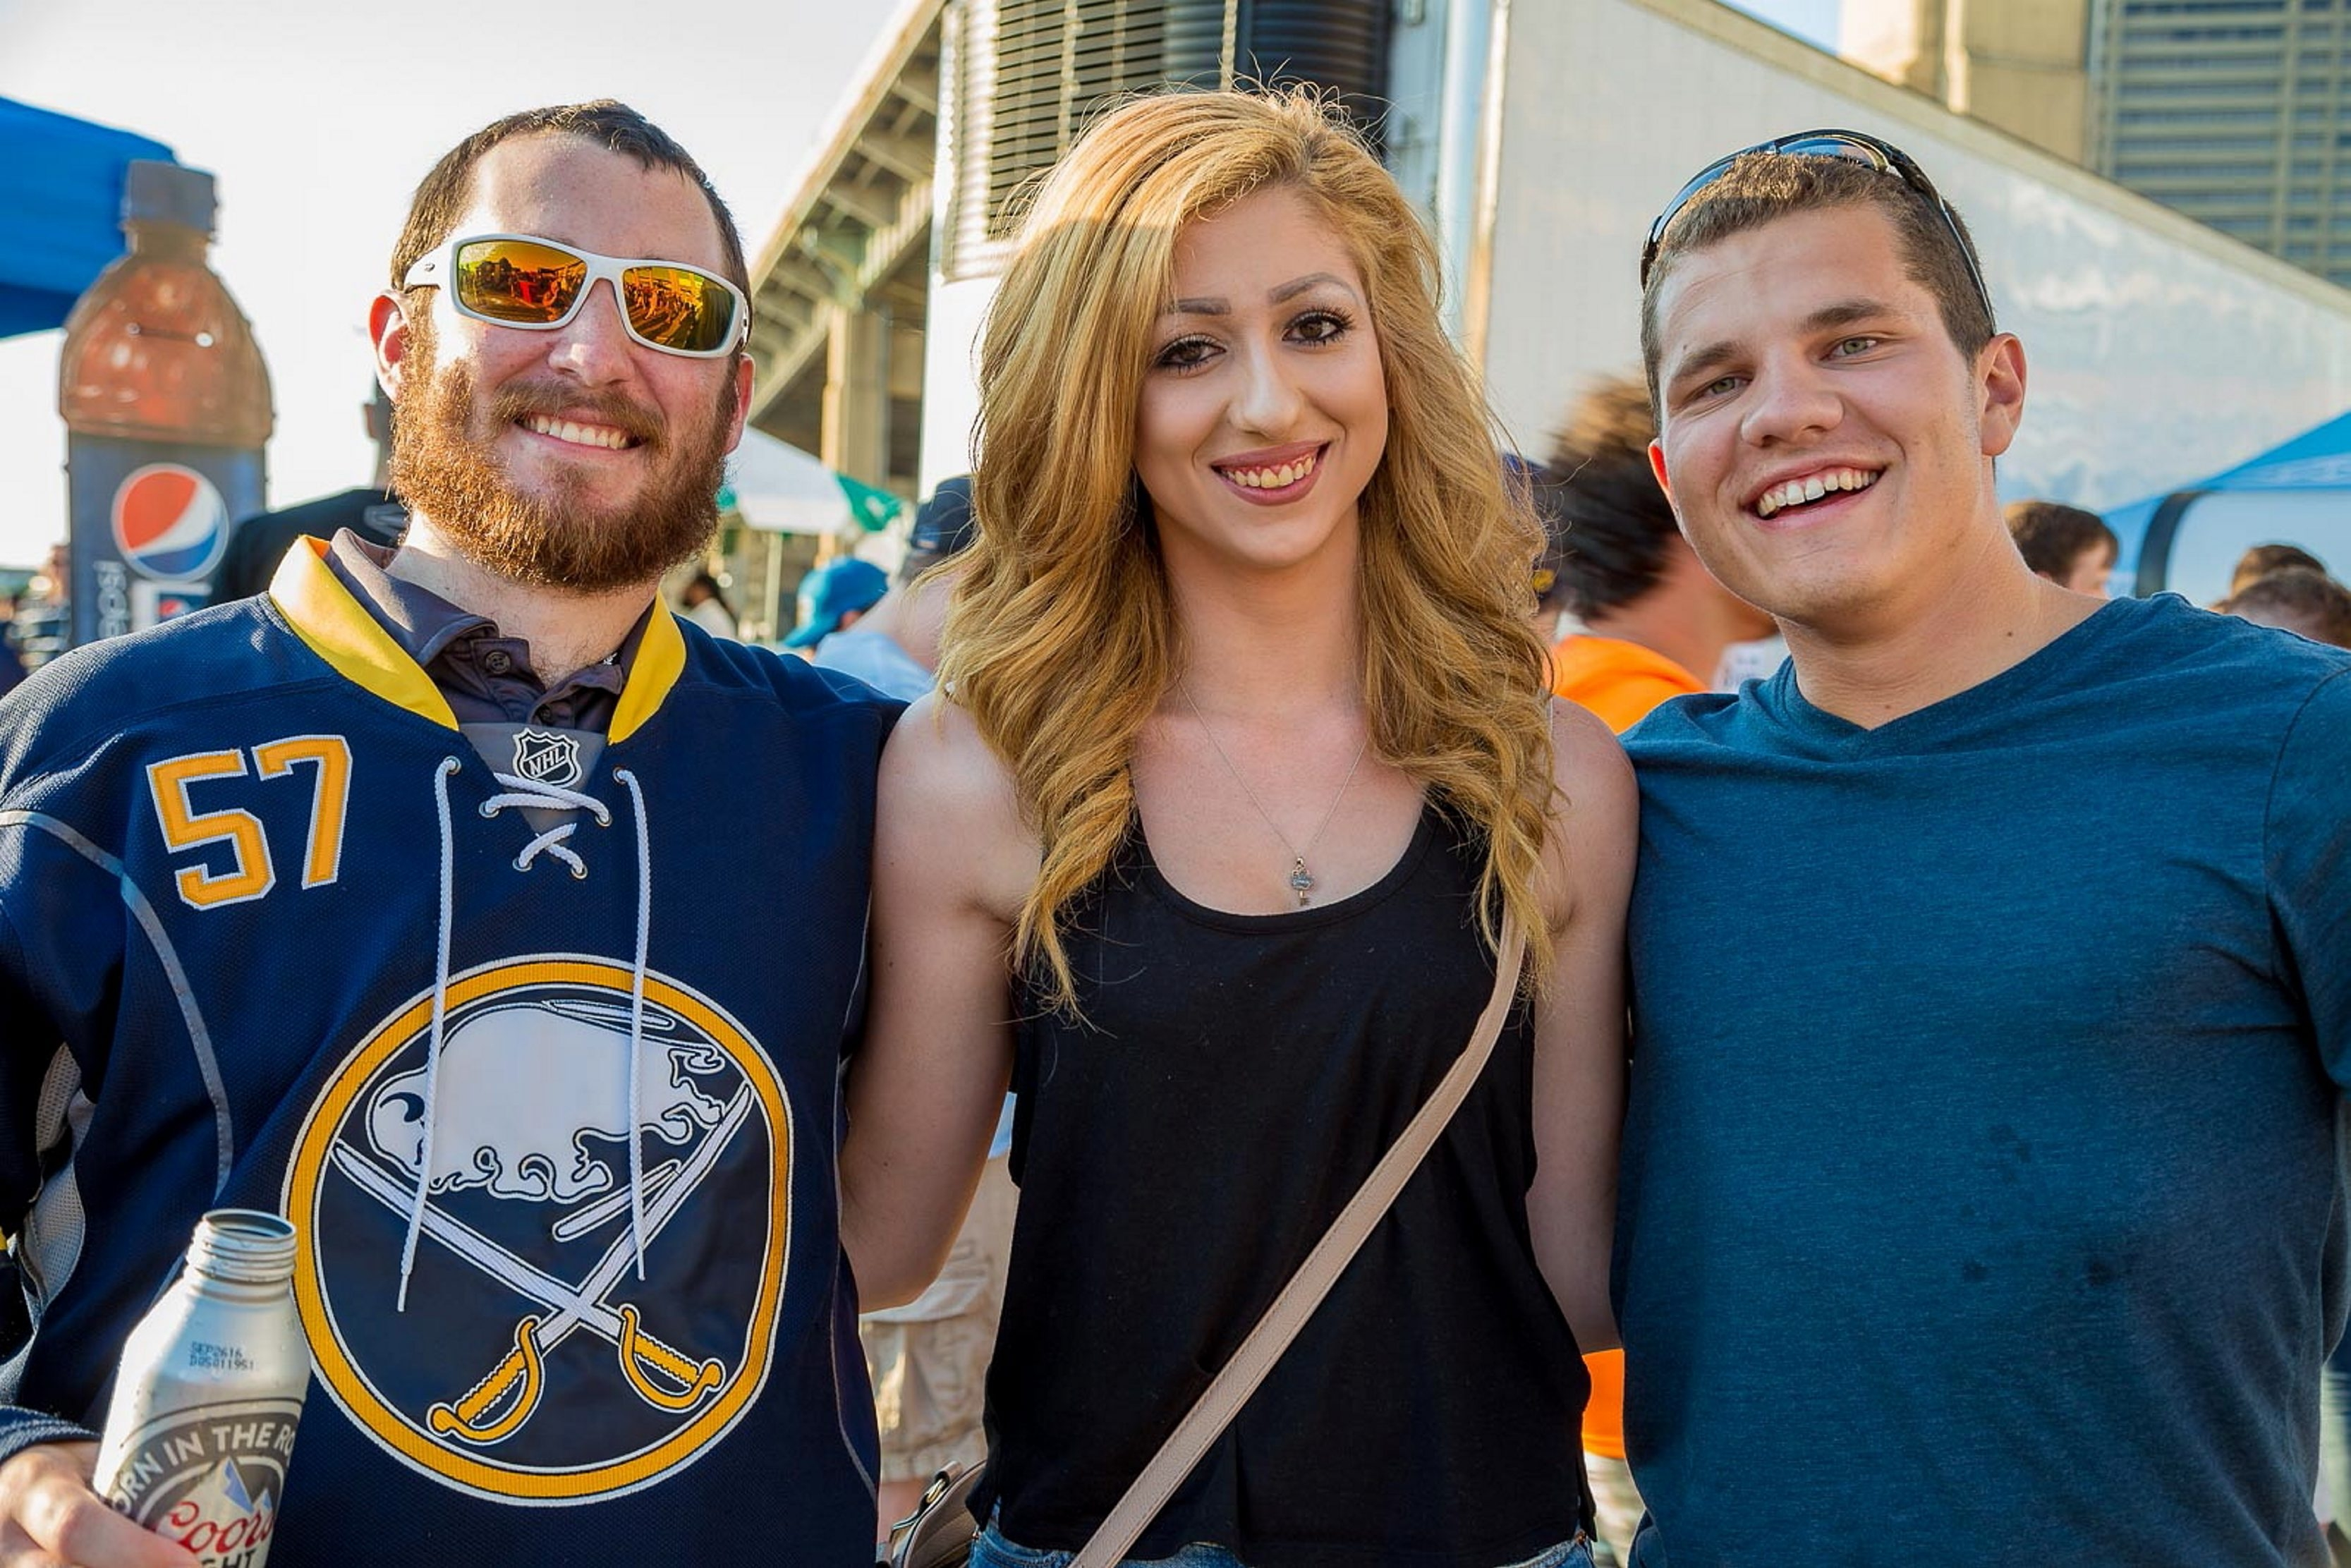 Fans at the NHL Draft party at Canalside. (Don Nieman/Special to The News)